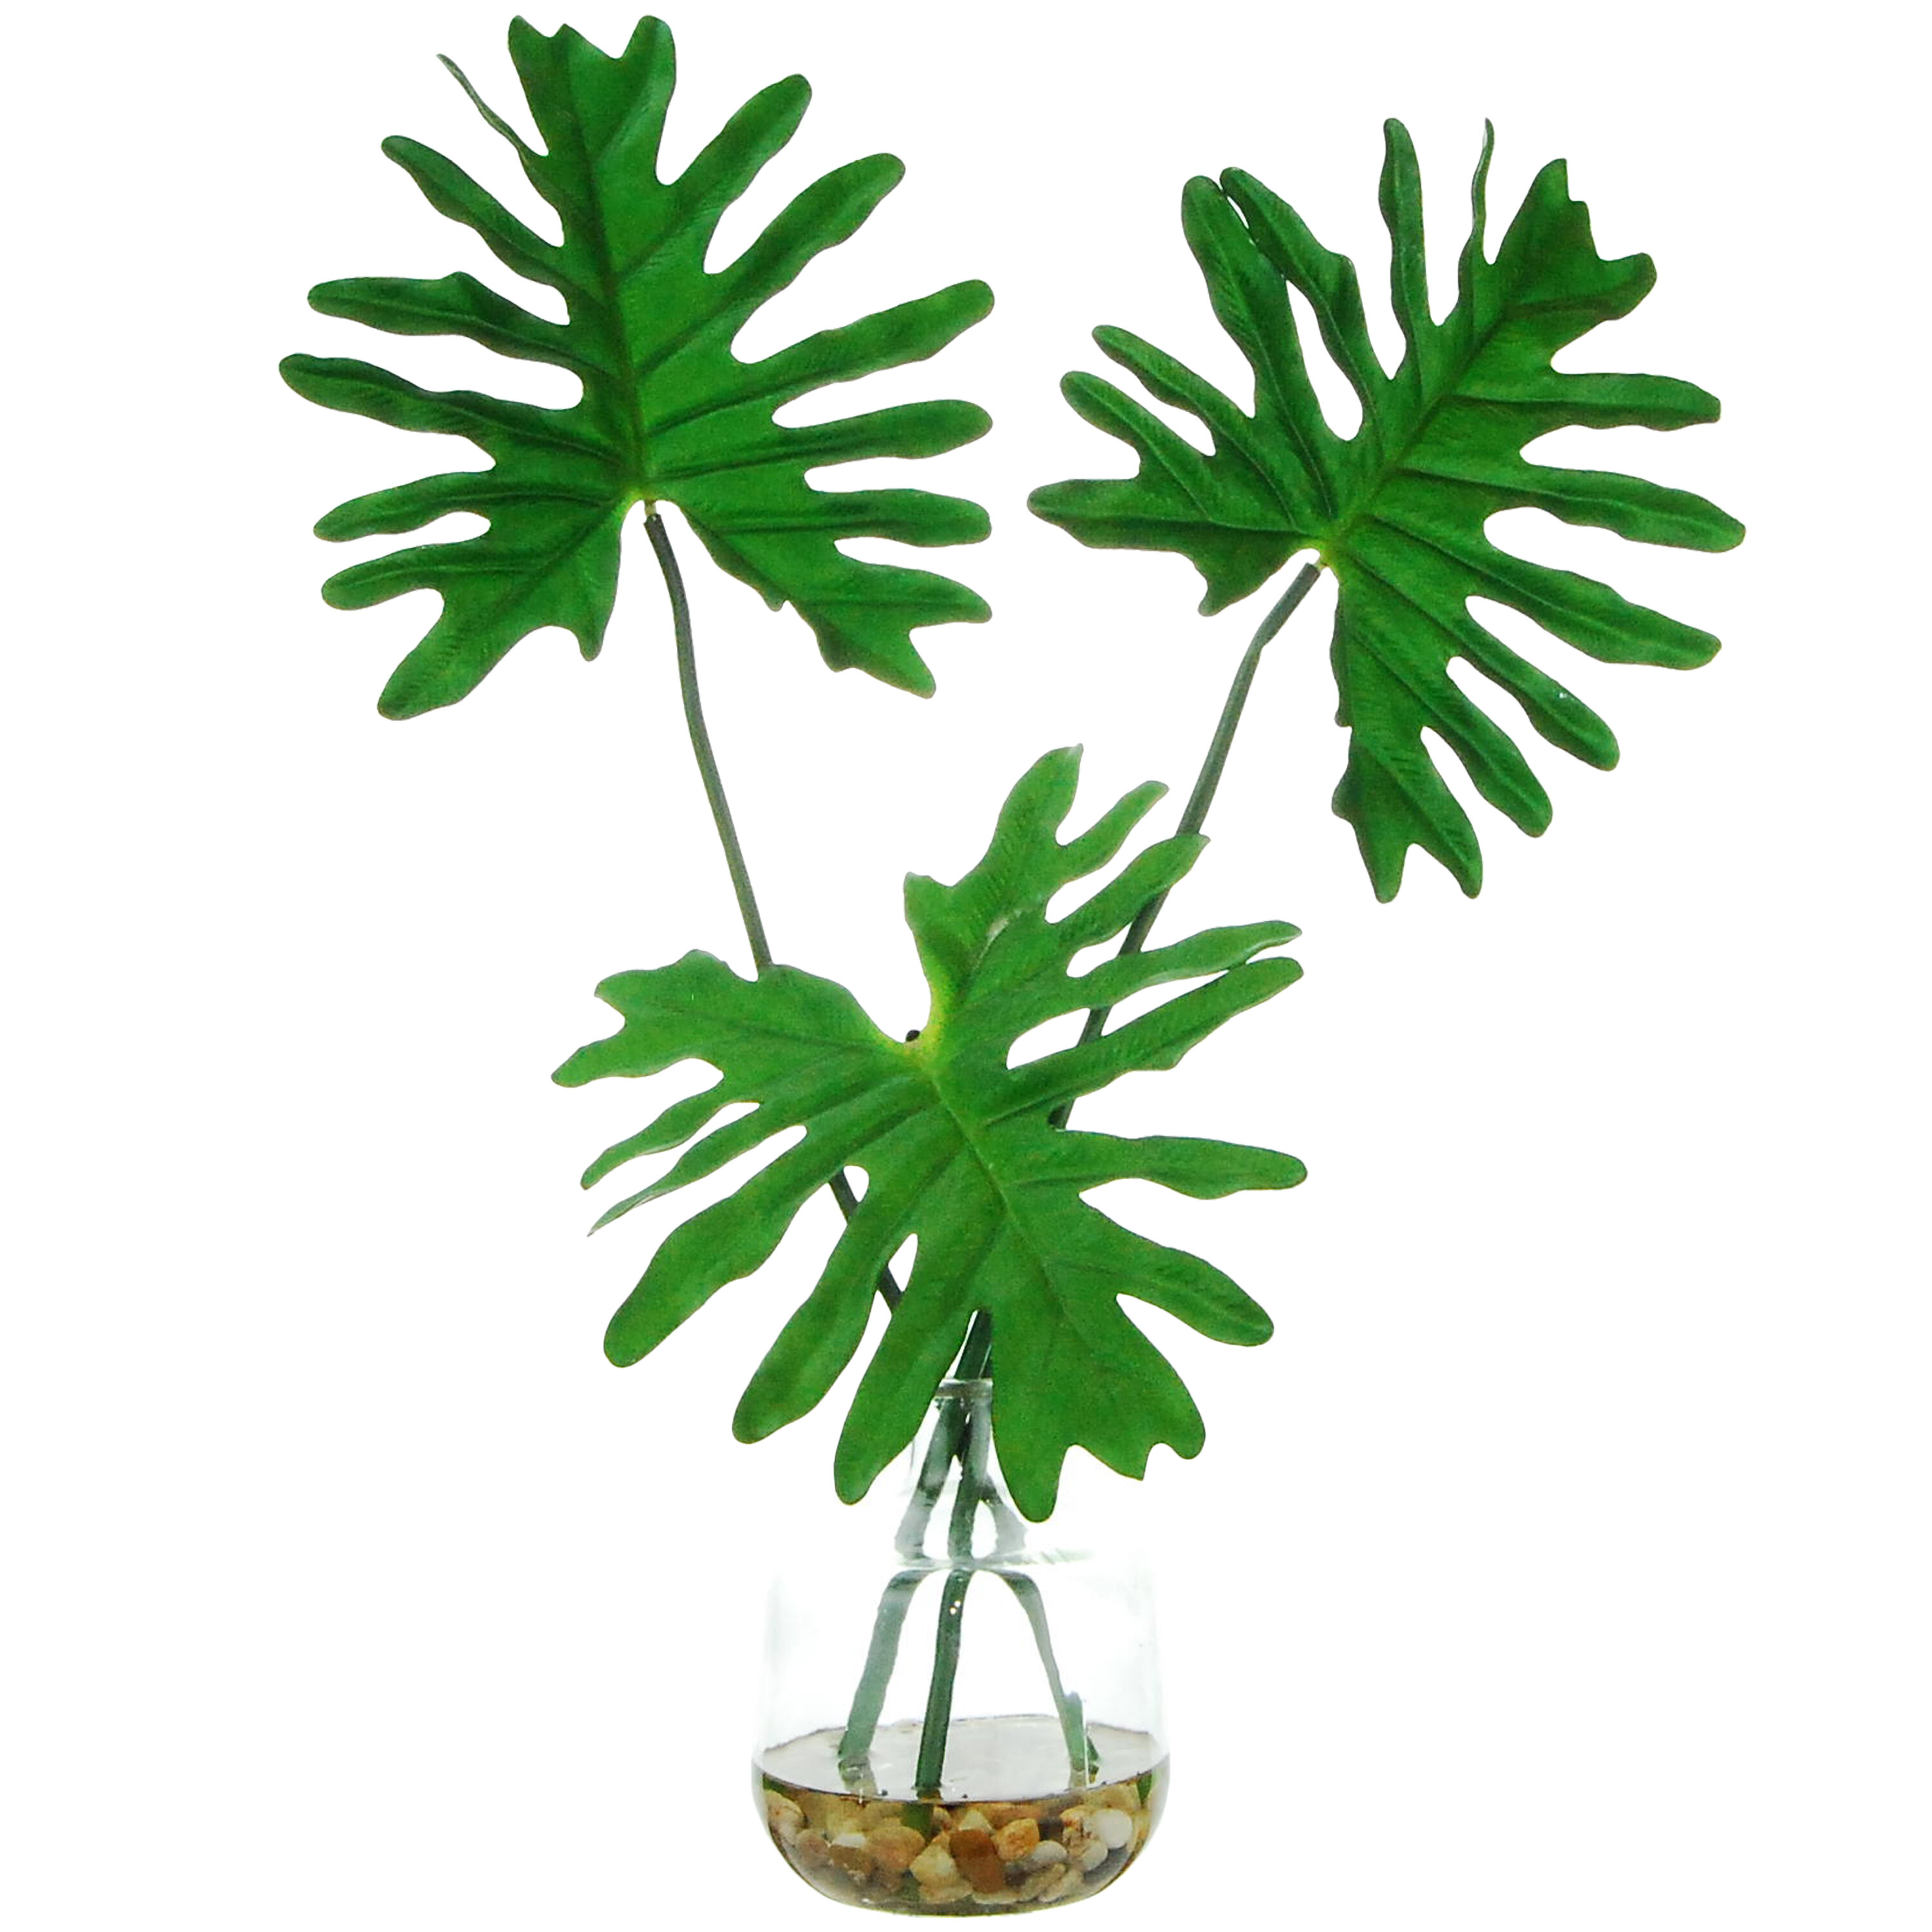 Bay Isle Home Tropical Leaves Desktop Foliage Plant In Clear Glass Vase Reviews Wayfair Plants from the tropics and those that grow in the jungle are not going to fare well in our cold damp tropicals tend to need constant warmth which is why houseplants tend to have tropical origins not. tropical leaves desktop foliage plant in clear glass vase